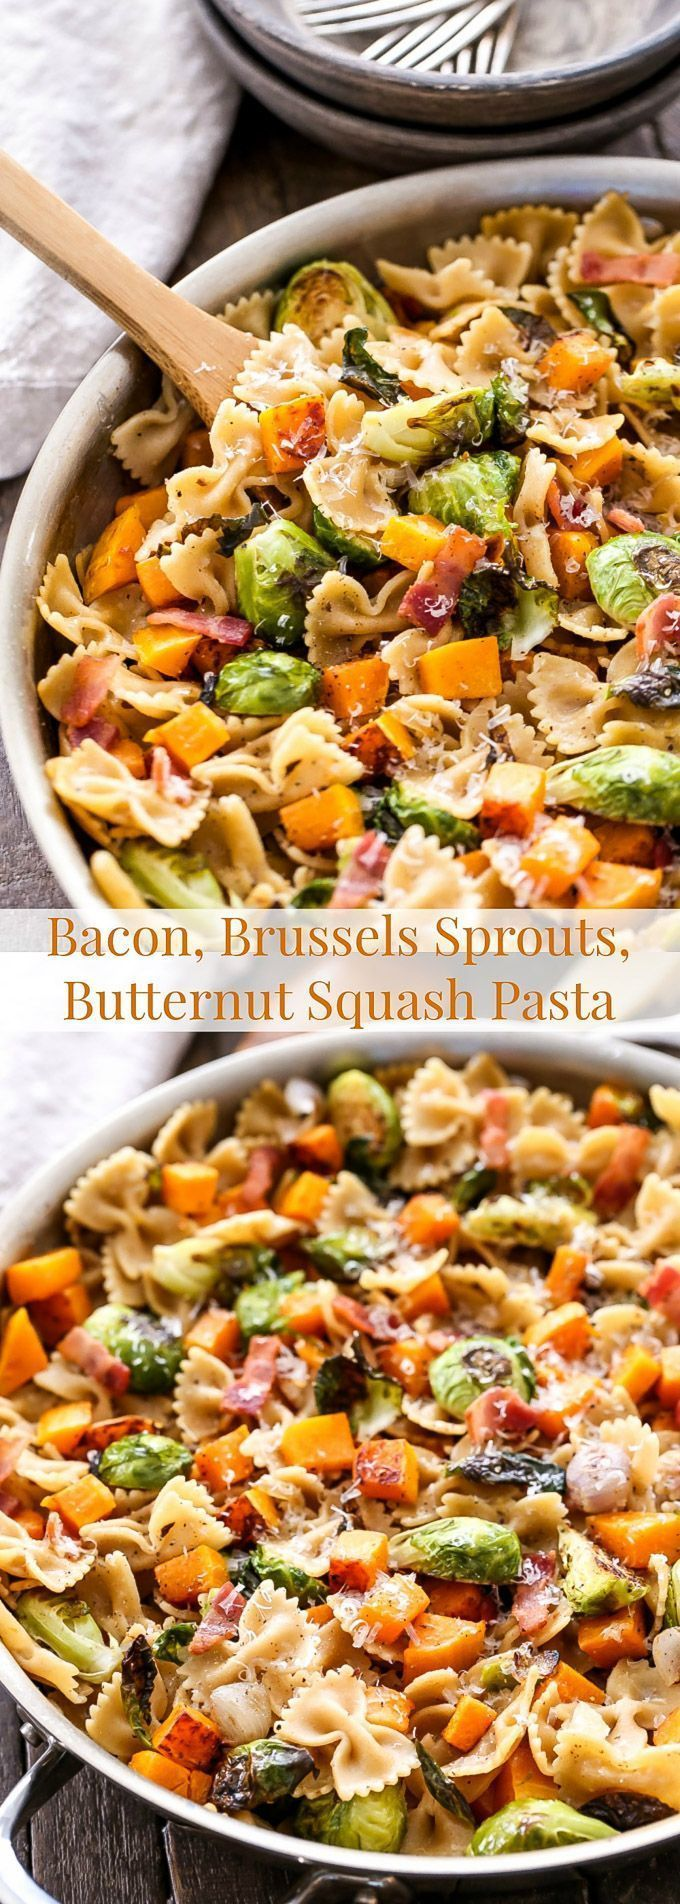 Veggie pasta never looked so good! This Bacon, Brussels Sprouts, Butternut Squash Pasta is a delicious and healthy comfort food dinner! #fallrecipesdinner